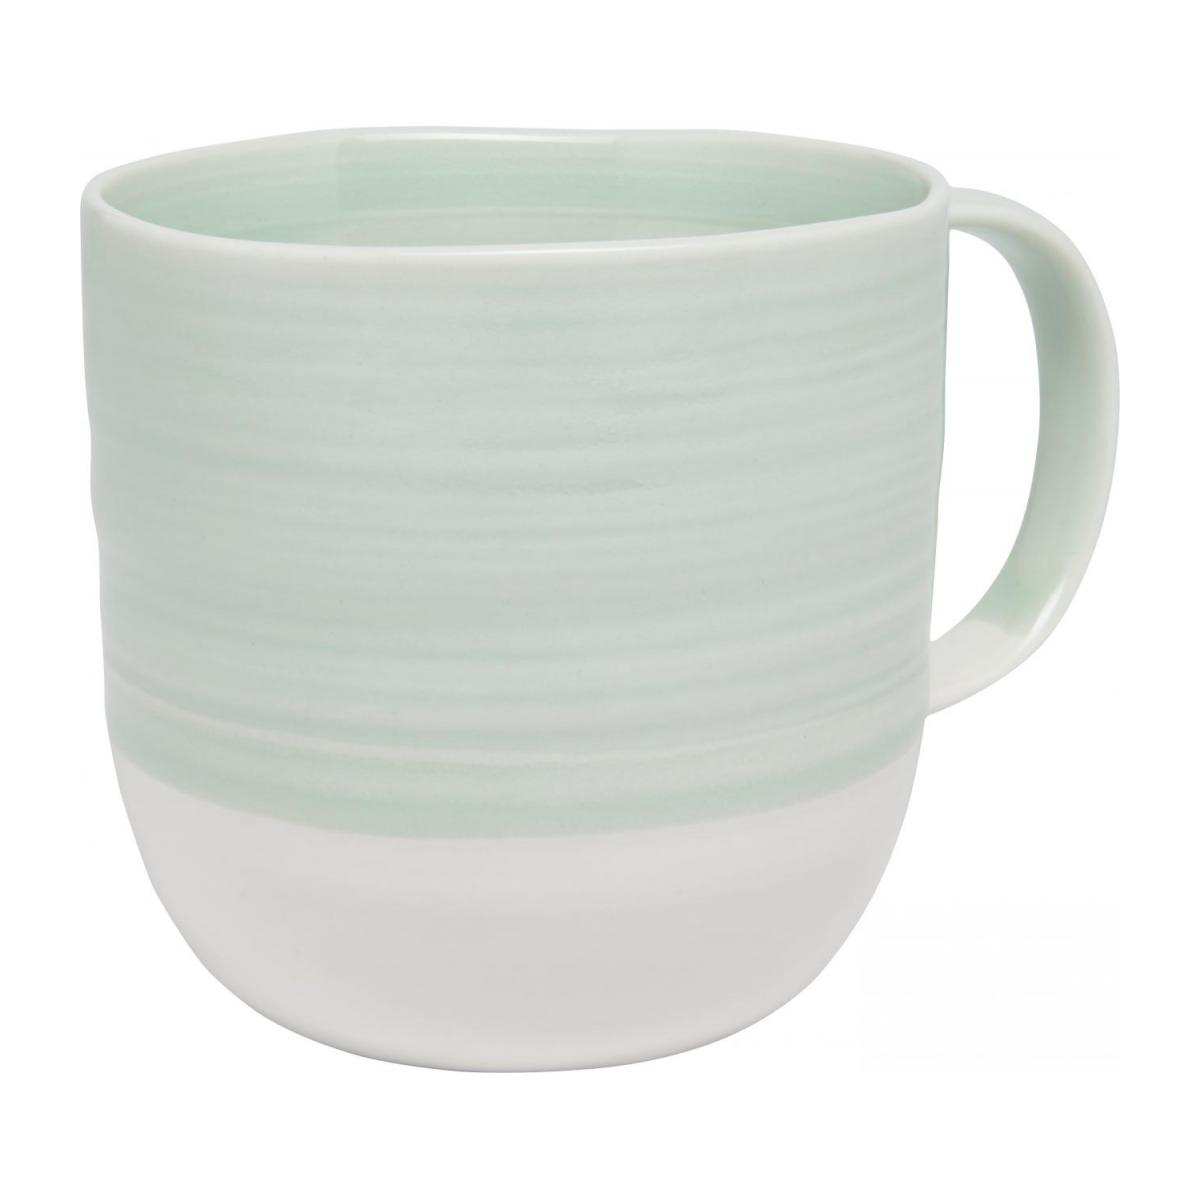 Mug made of porcelain celadon n°1